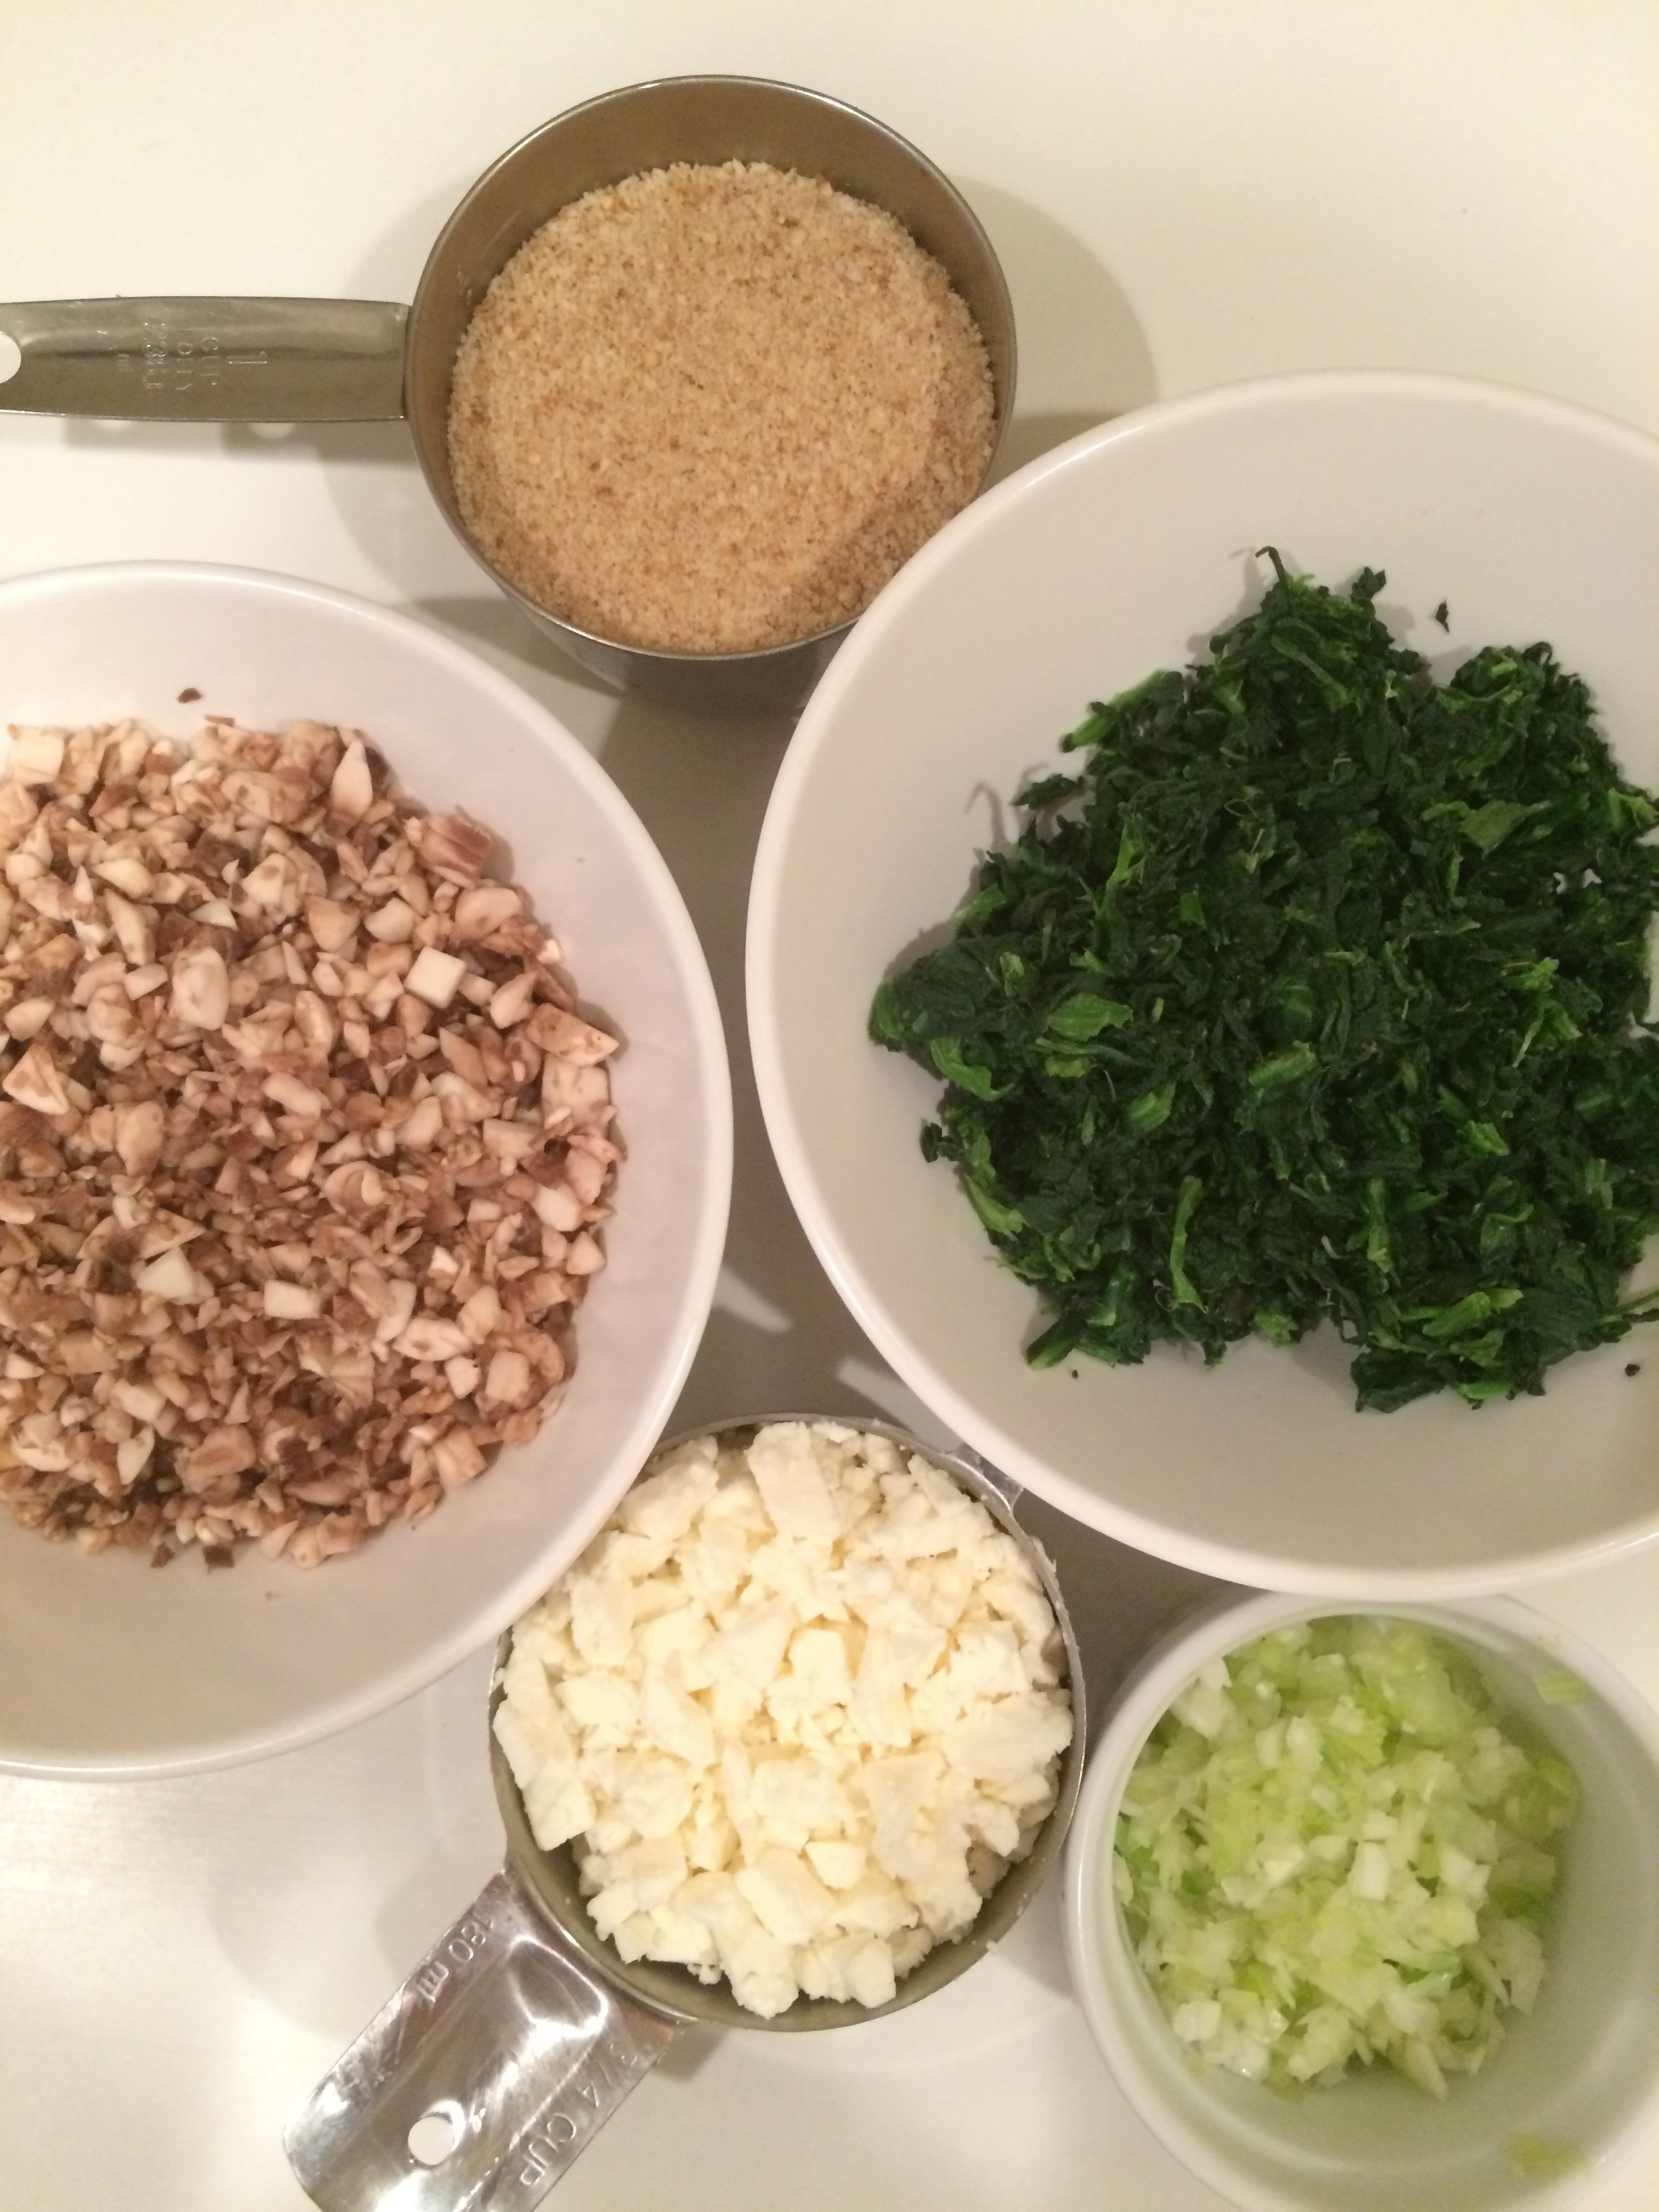 Ingredients for Spinach, Mushroom and Feta CutletsMG_2120